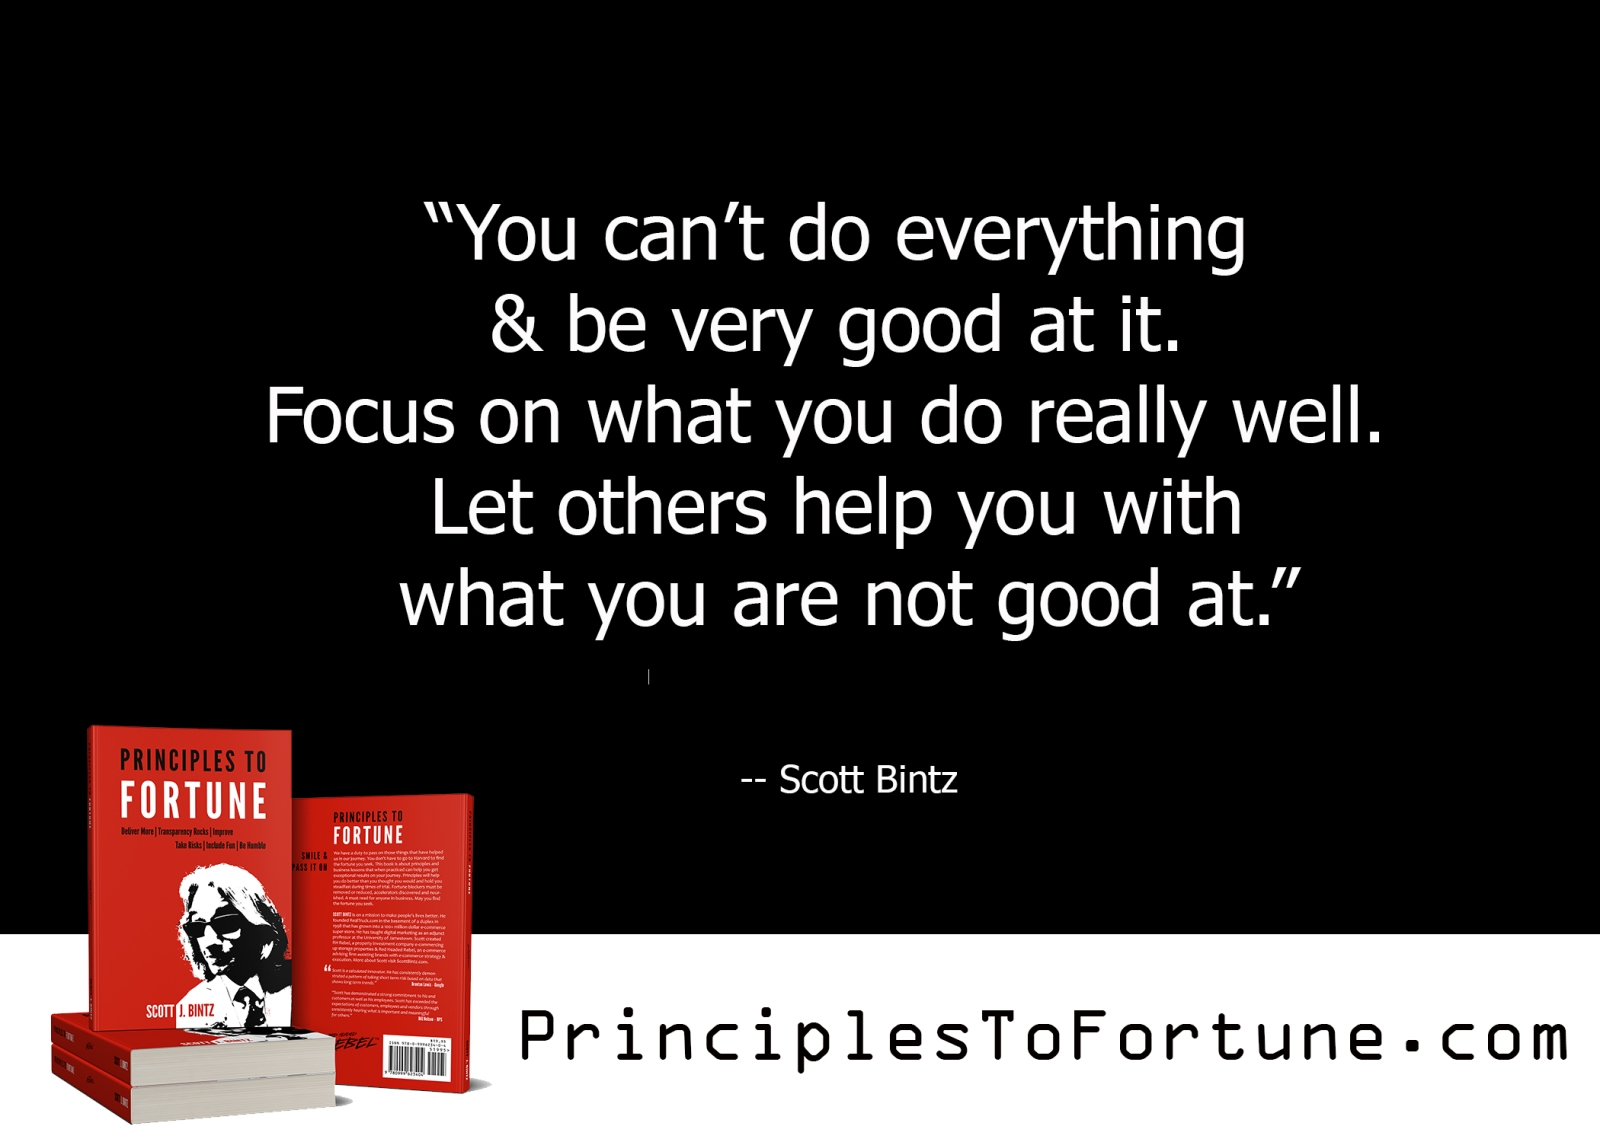 """""""You can't do everything & be very good at it. Focus on what you do really well. Let others help you with what you are not good at."""" -- Quote from the Book Principles To Fortune by Scott Bintz"""